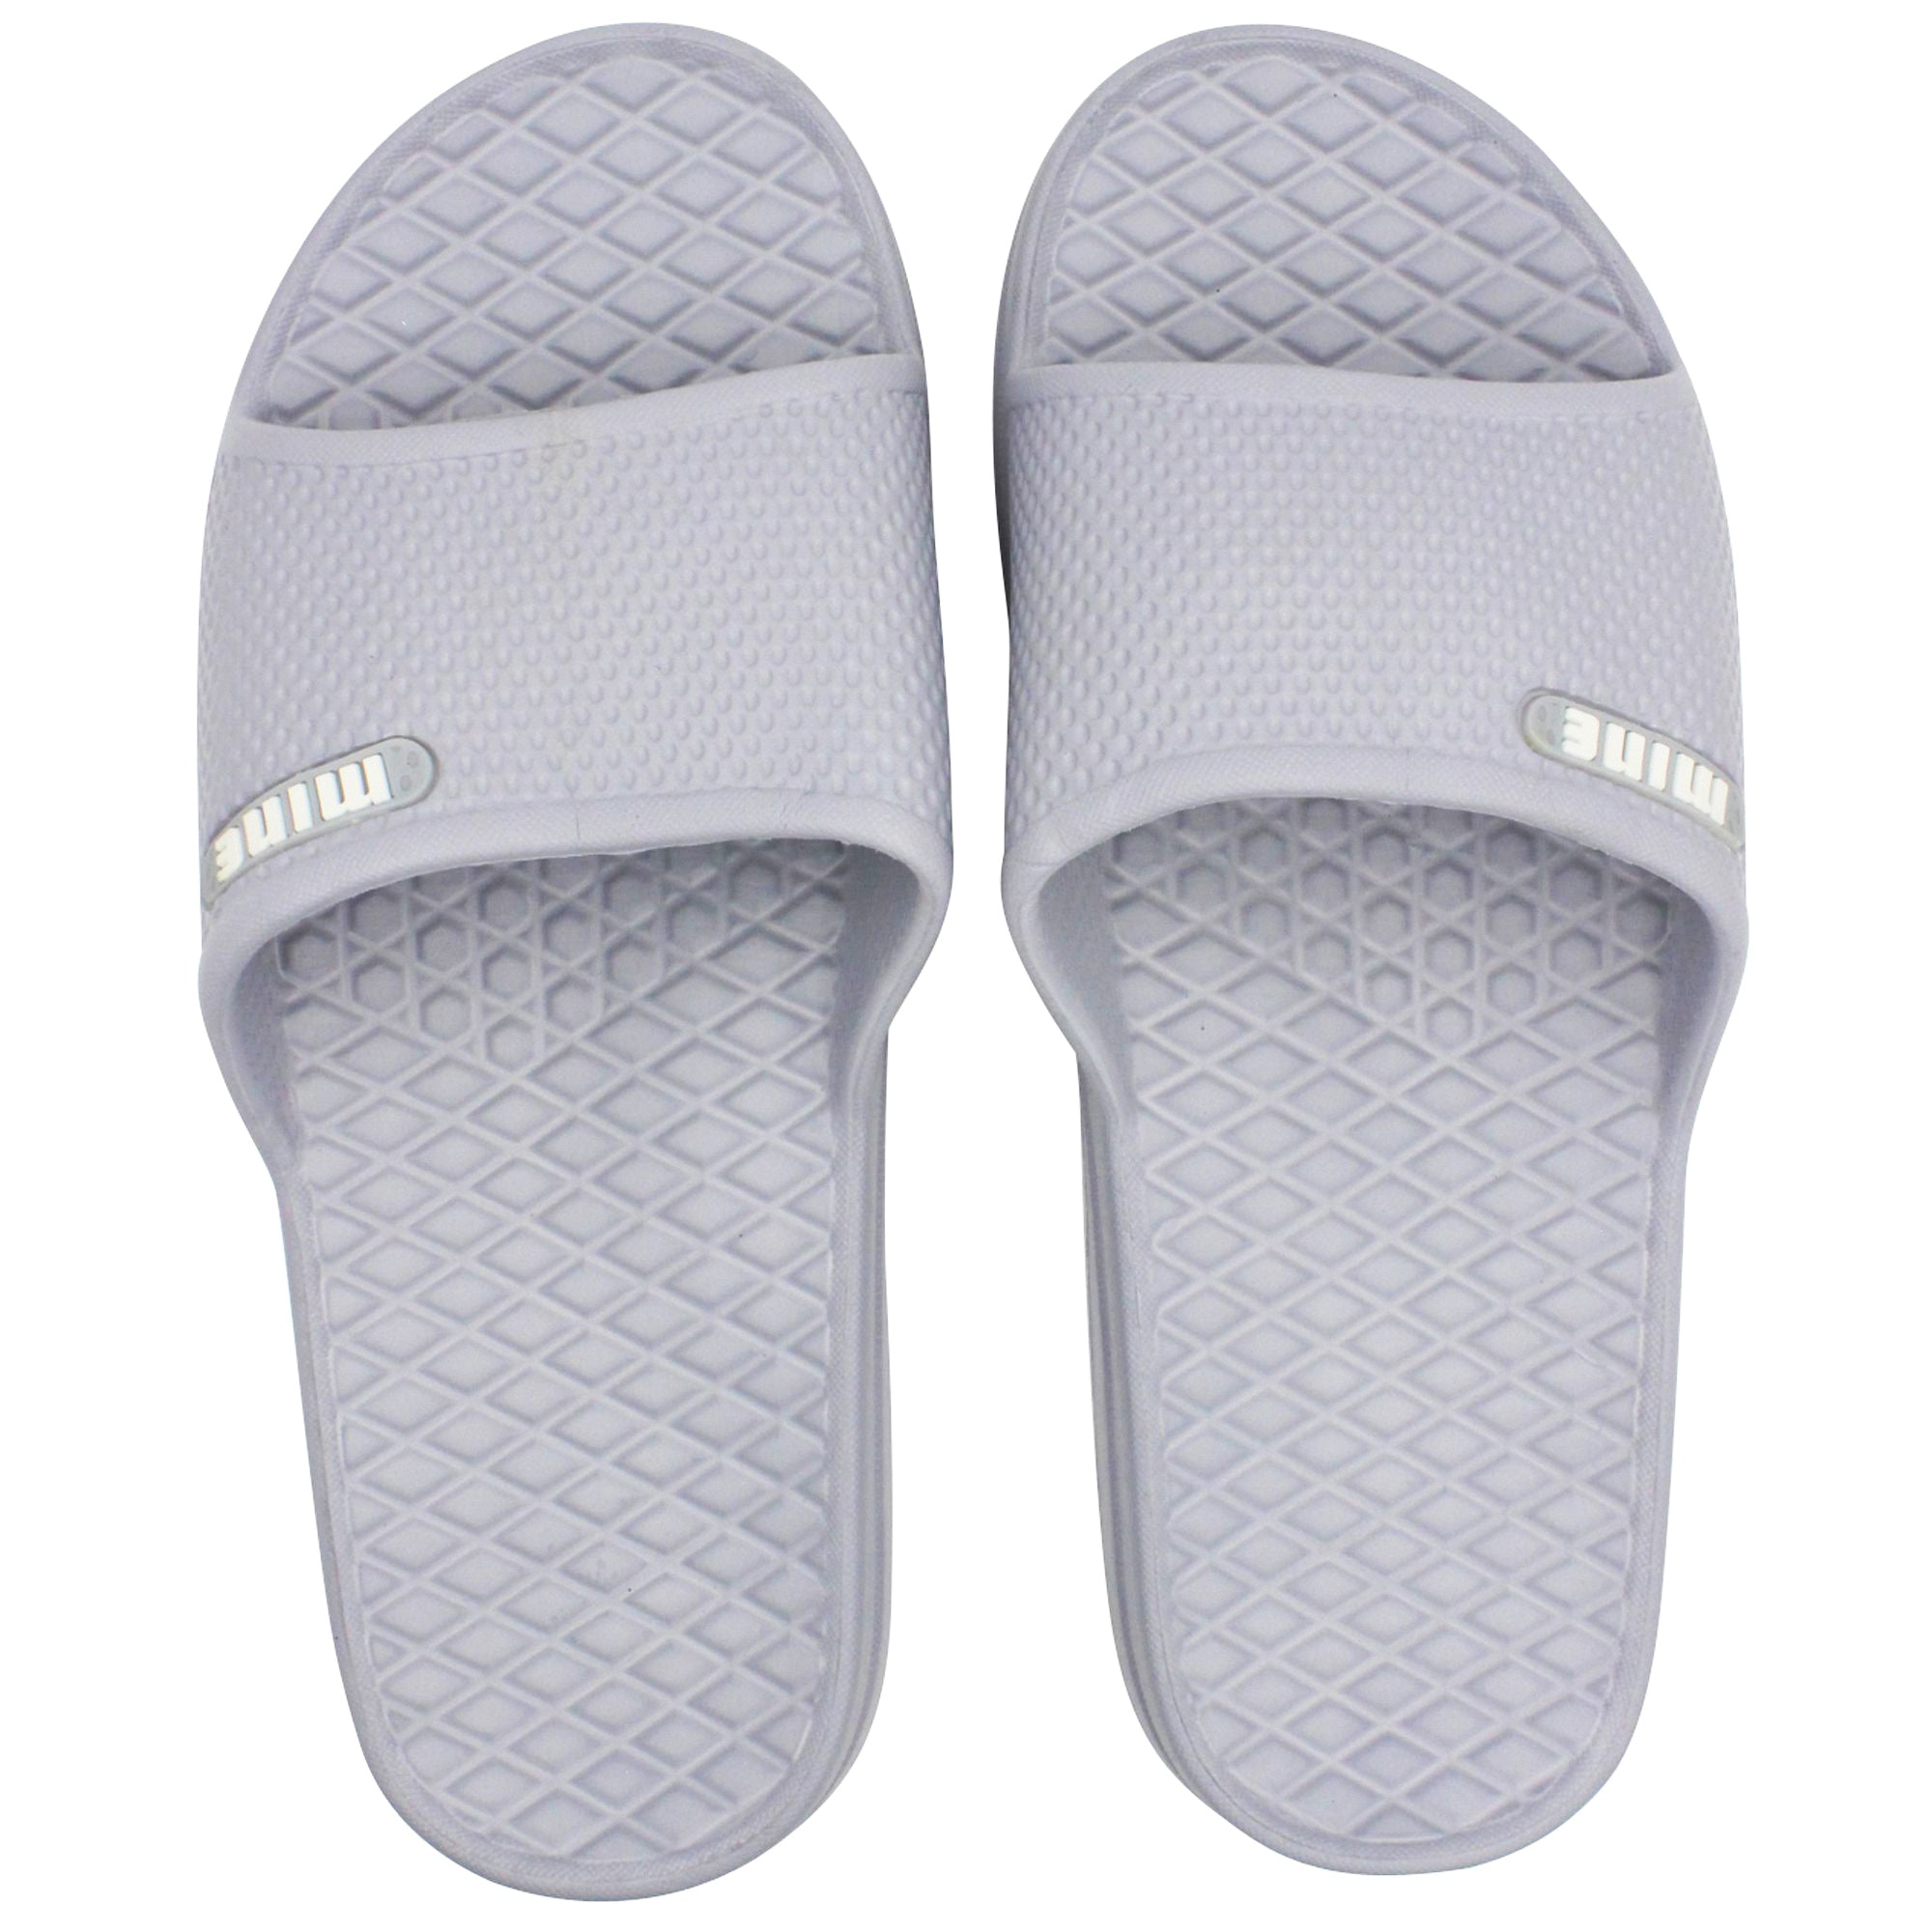 SLM Men's Soft Rubber Cushion Slip On Casual Bathroom and House Slide Sandals